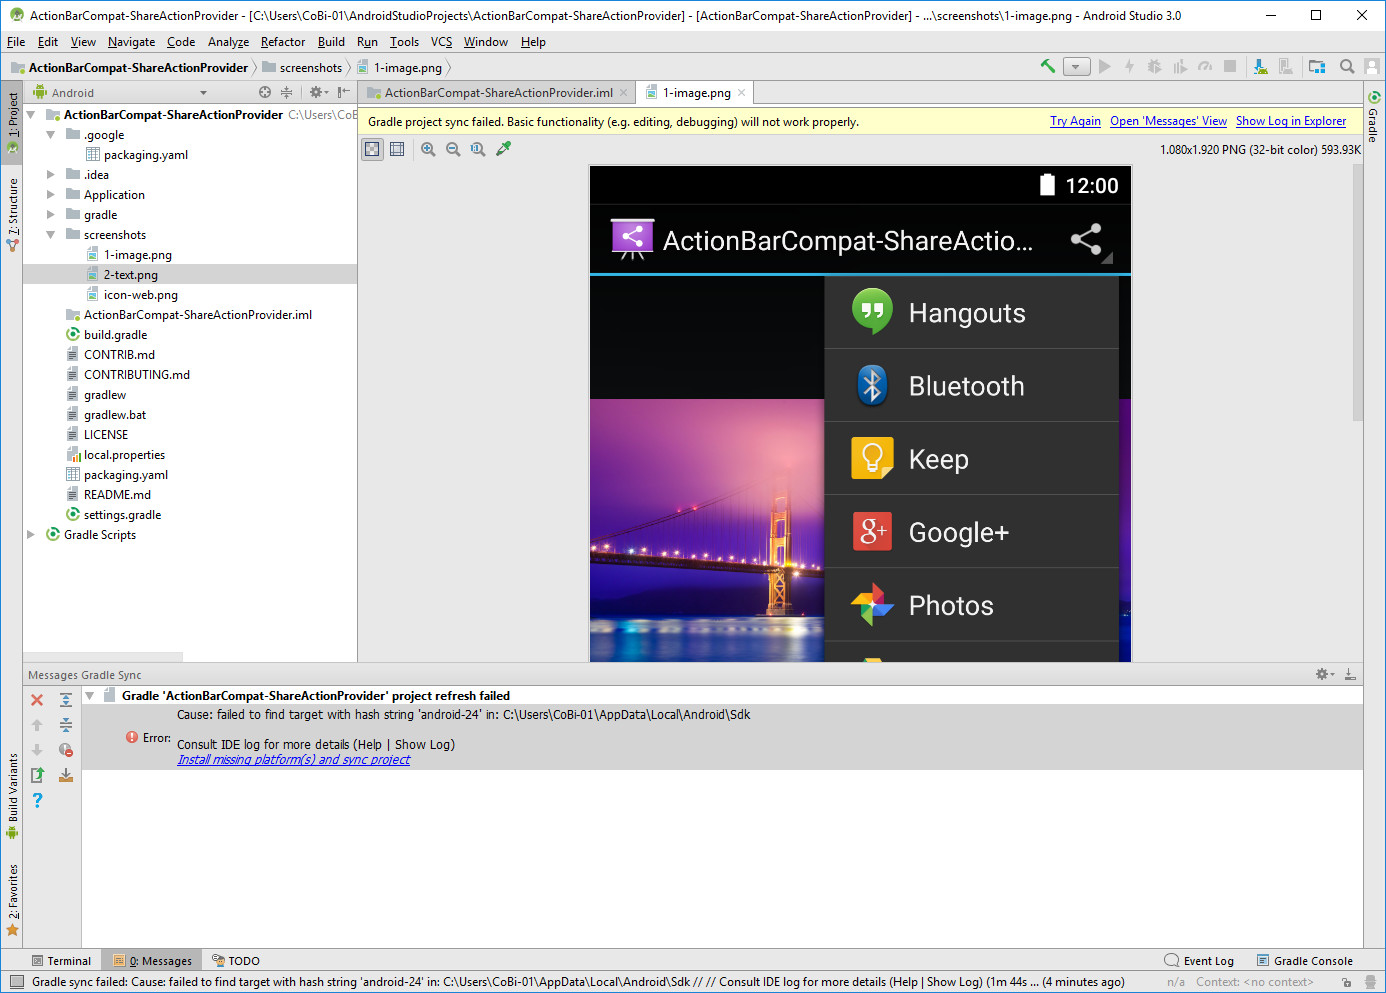 Screenshot 1 - Android Studio